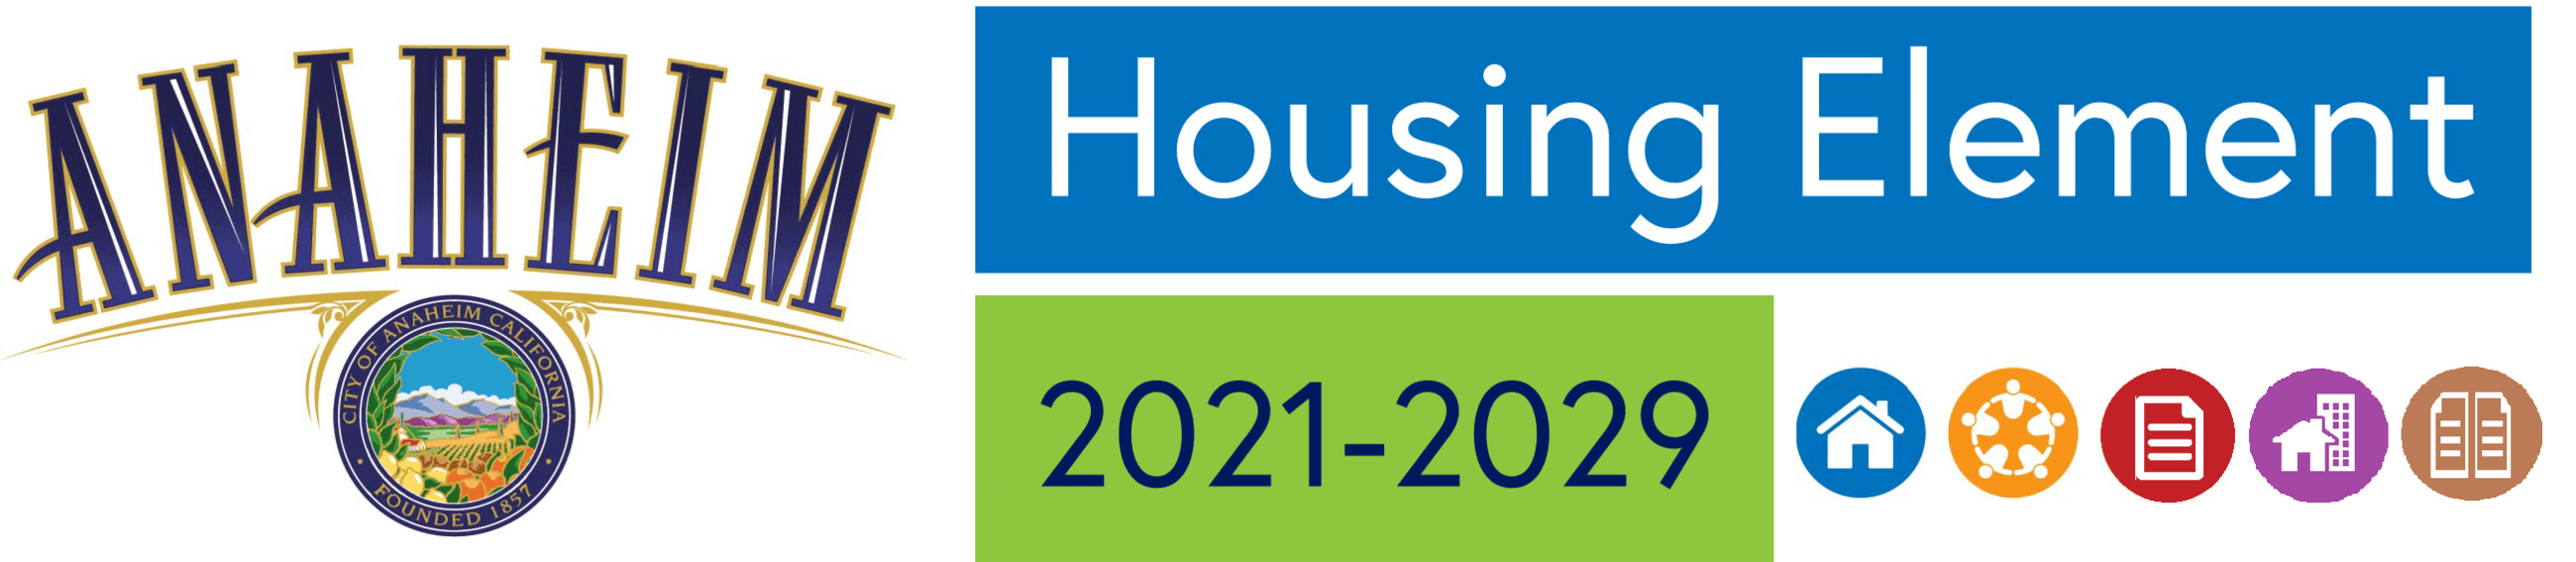 Housing element logo 2-15-21 png